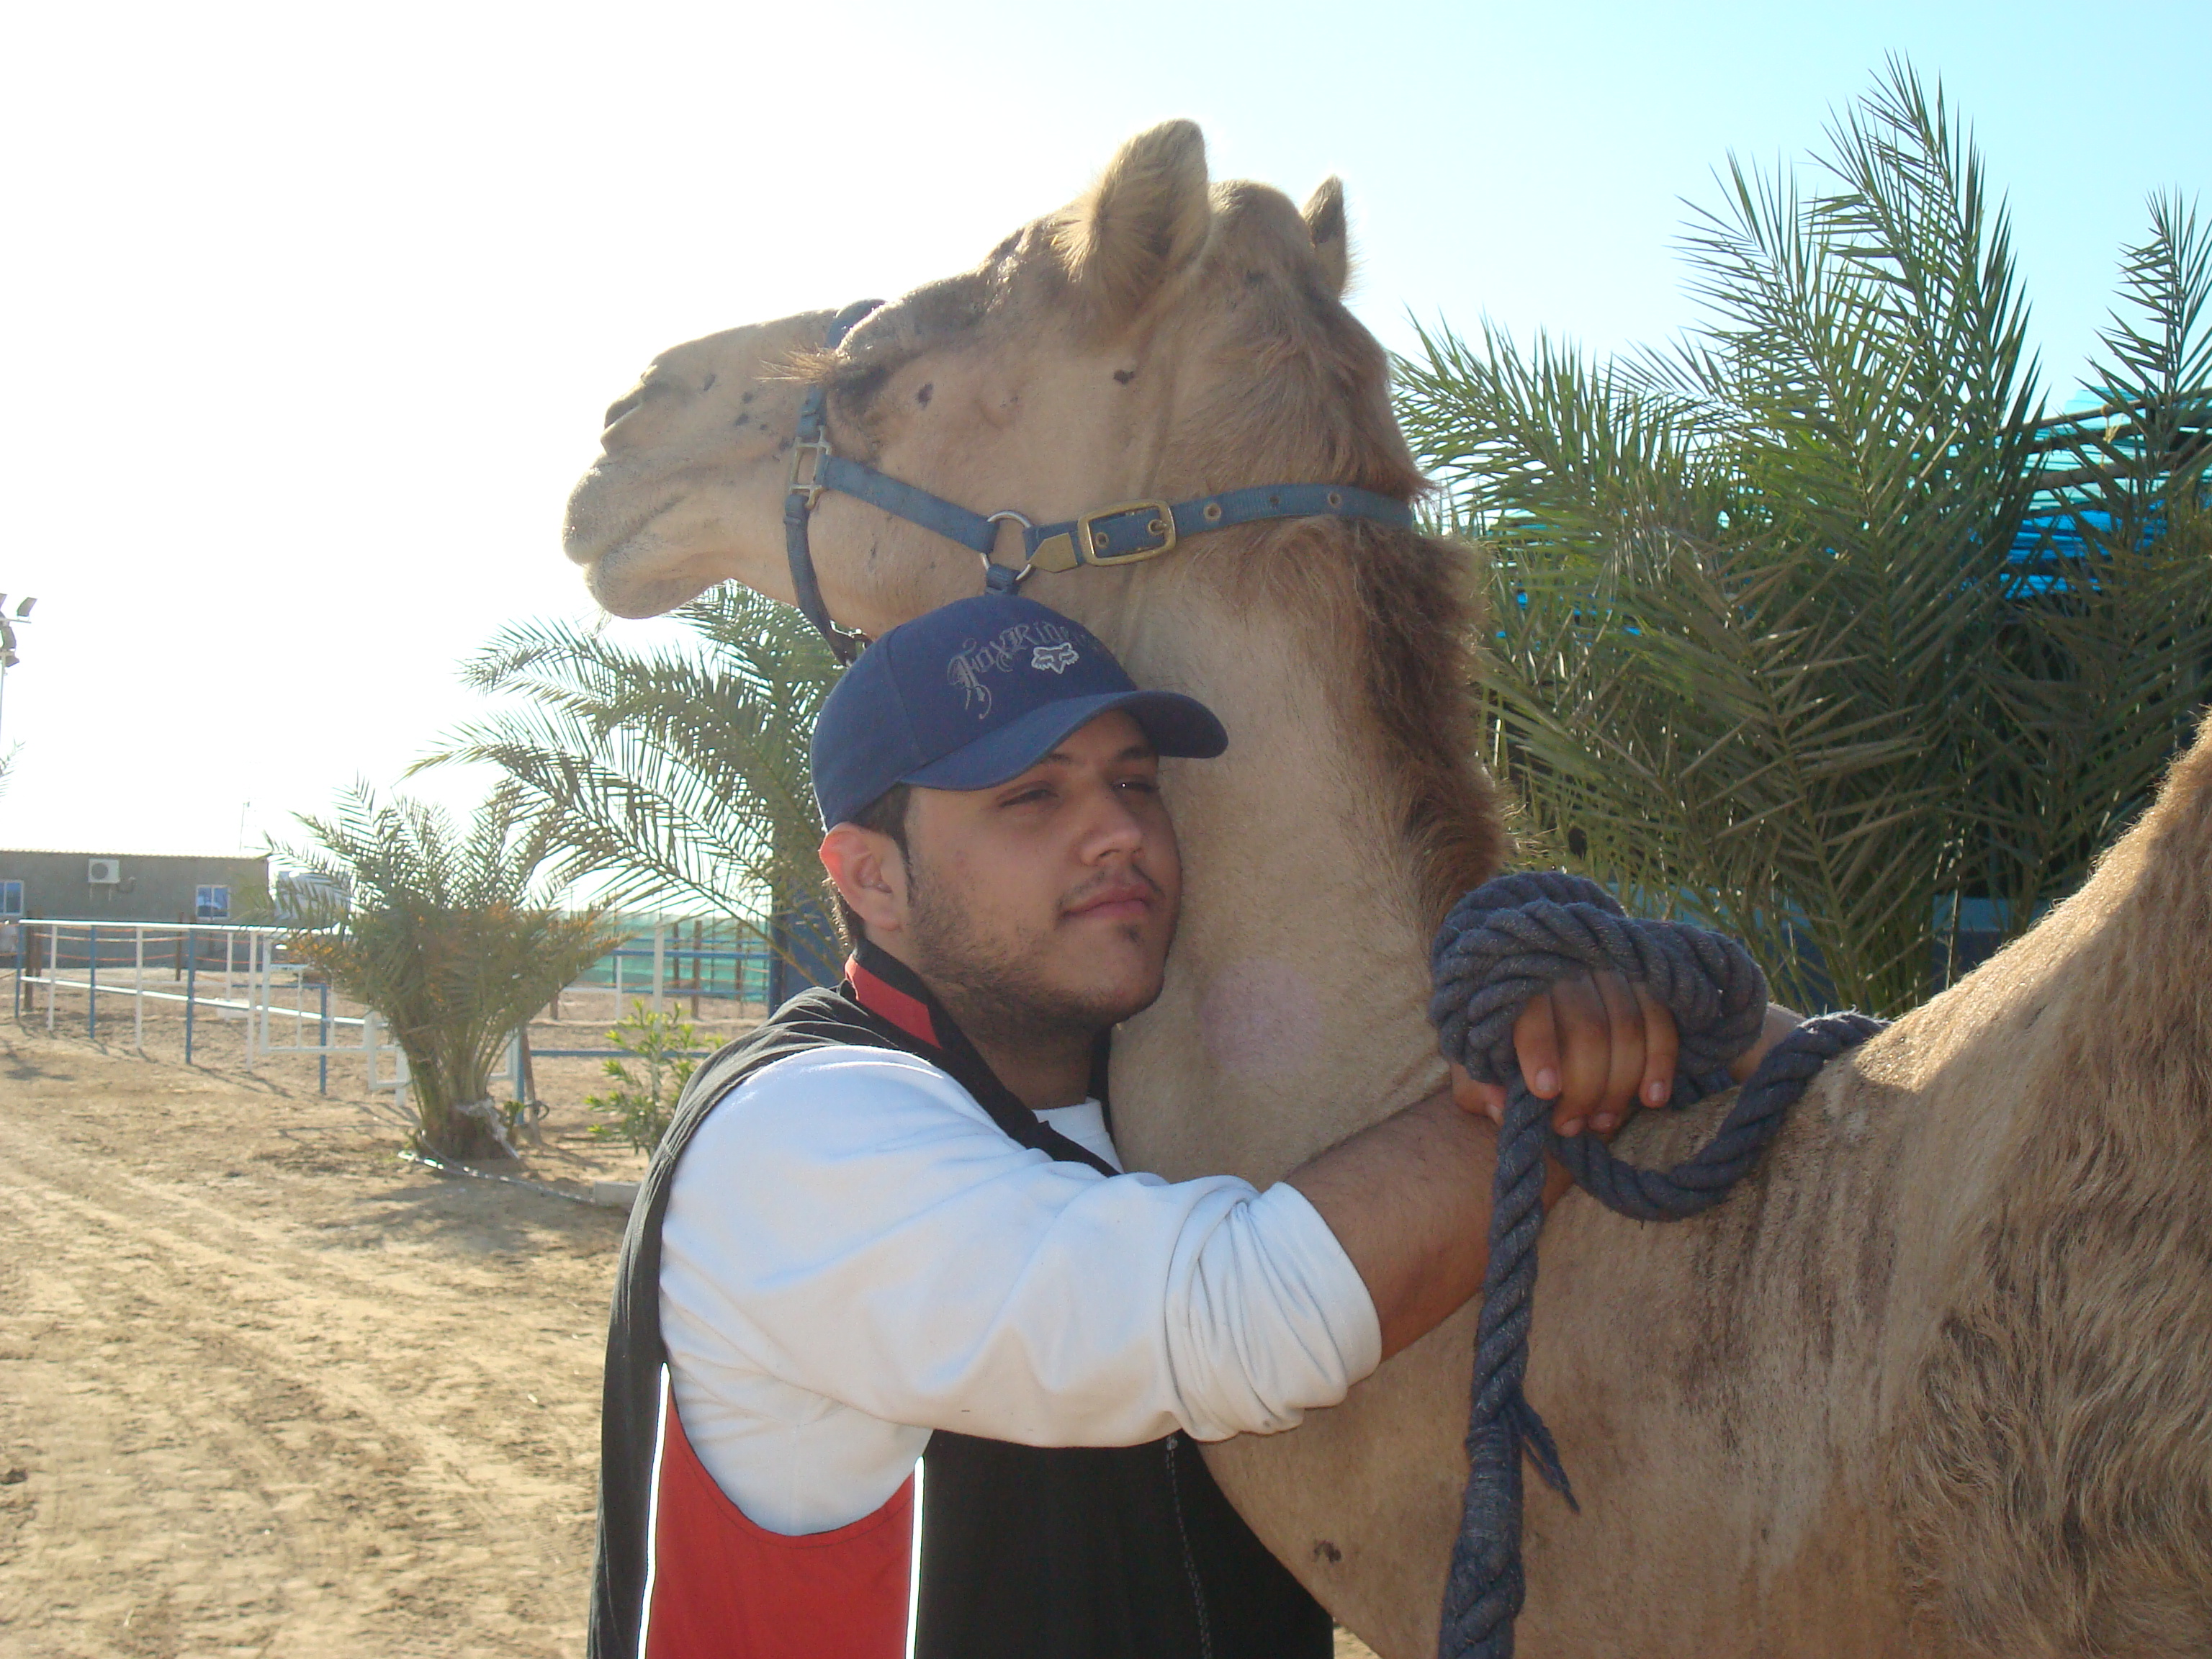 Mohammed Al Qubaisi and Al Awari